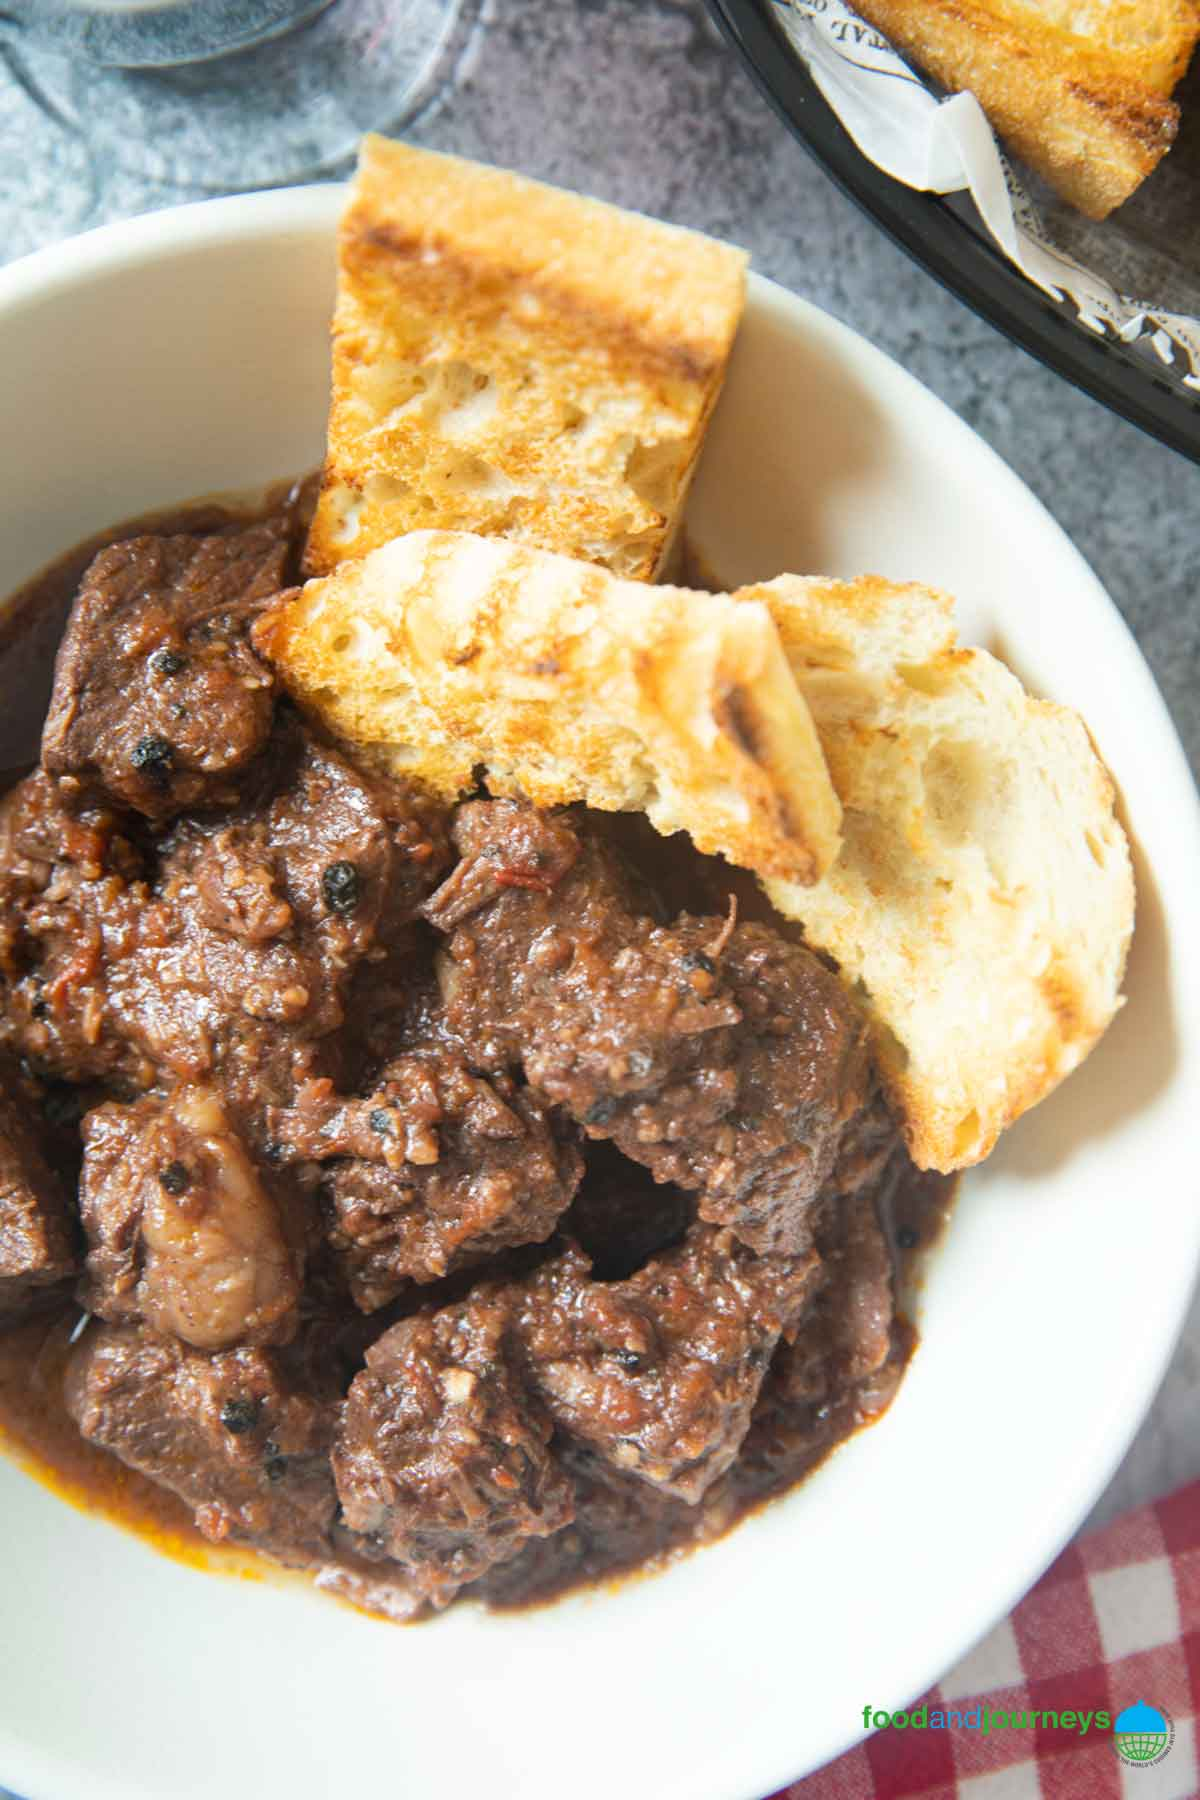 A closer shot of peposo, highlighting the peppercorns and the sauce coating the chunks of beef.